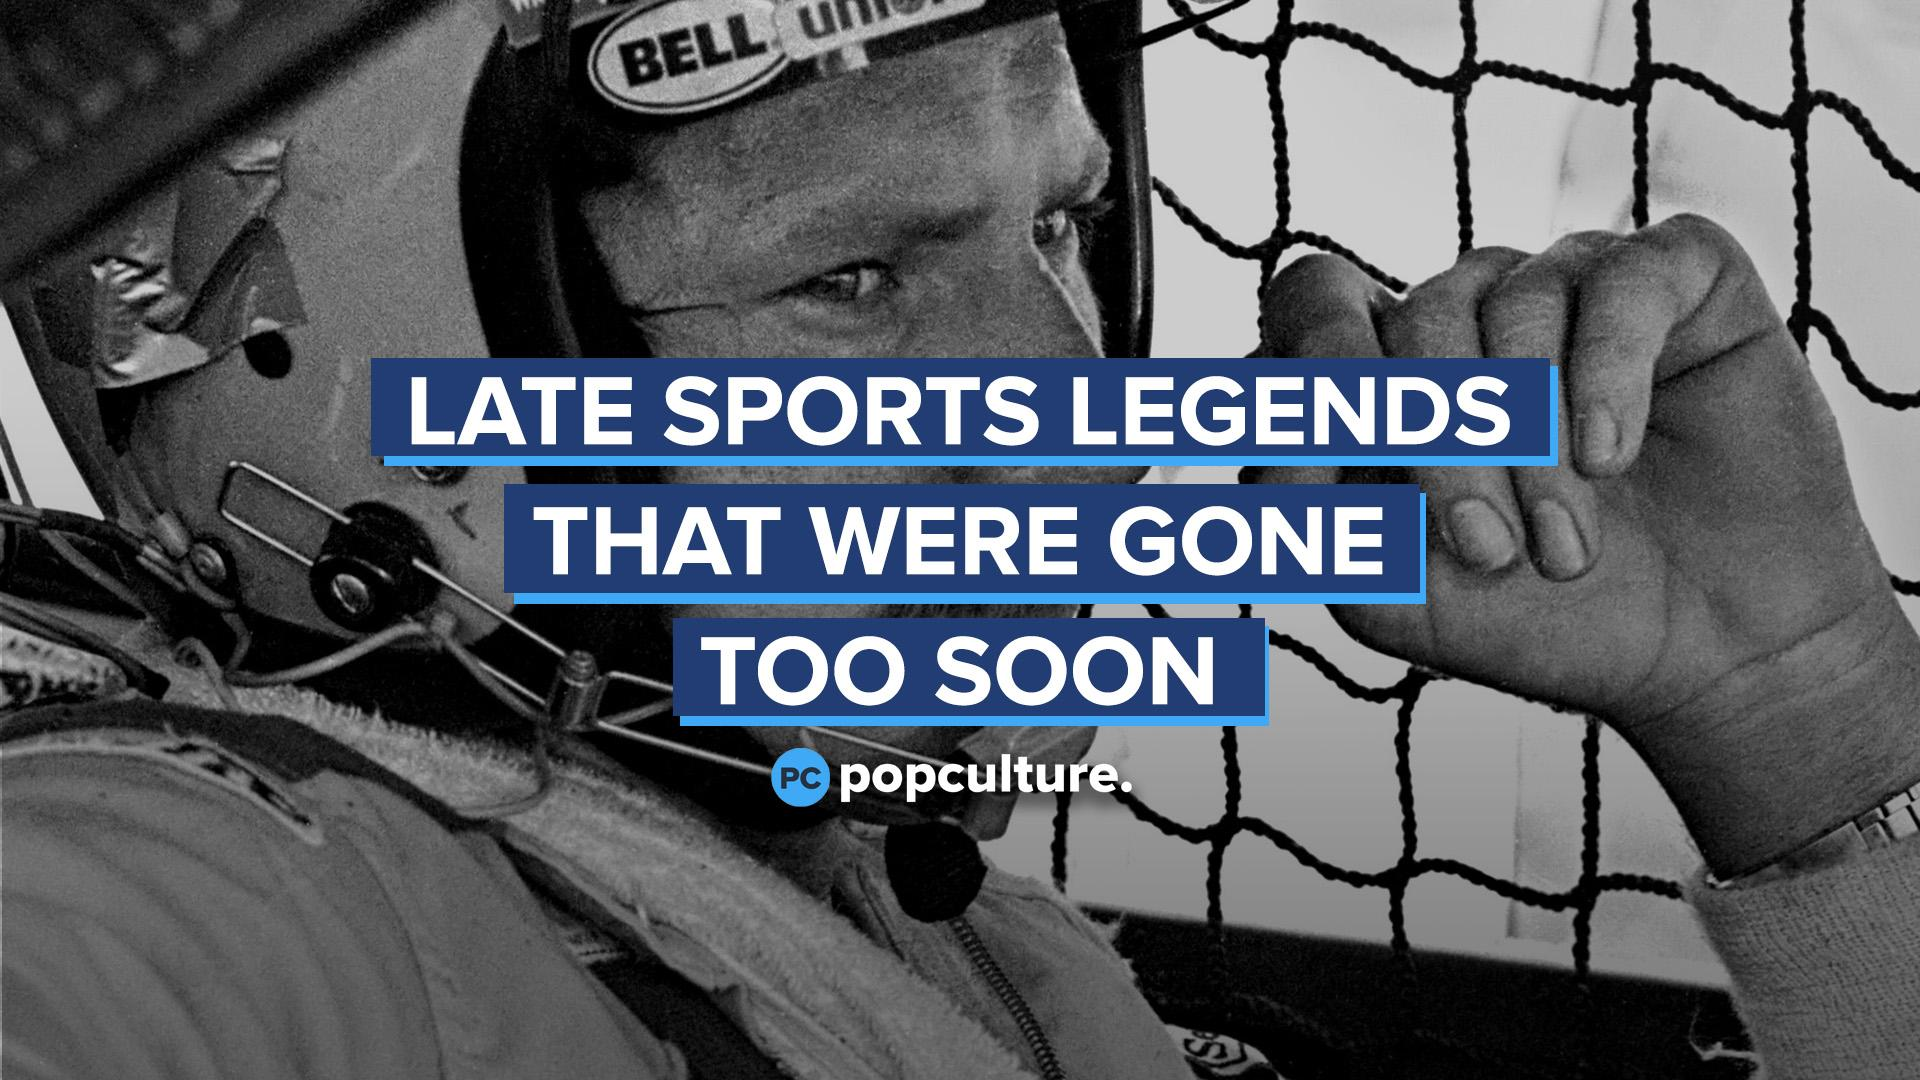 Late Sports Legends That Were Gone Too Soon screen capture